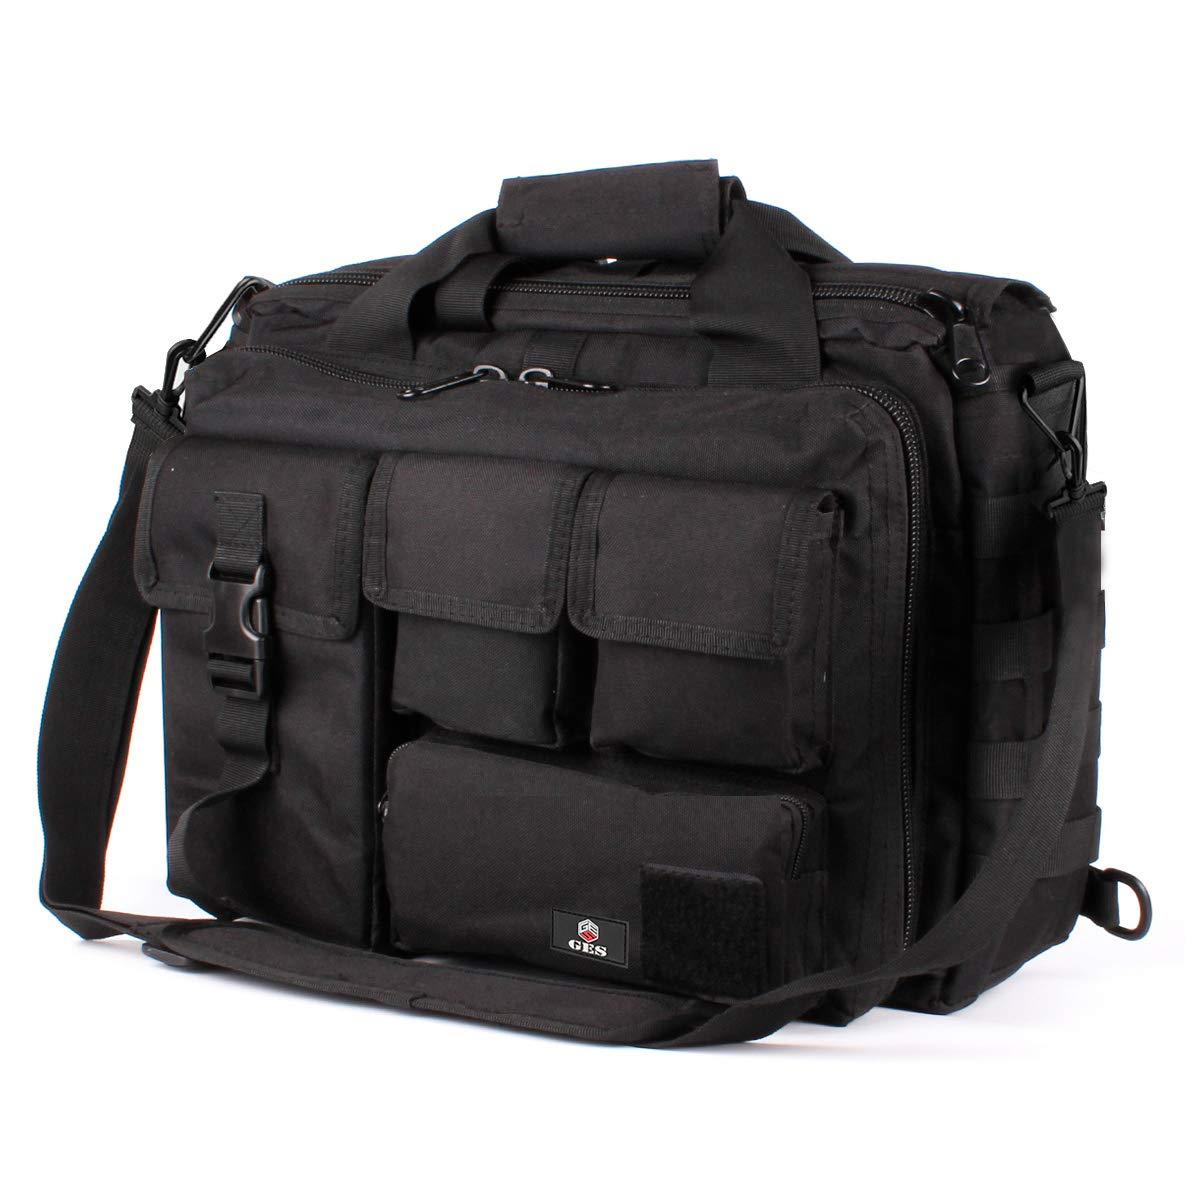 Tactical Briefcase, GES 15.6 Inch Men's Messenger Bag Military Briefcase for Men by GES